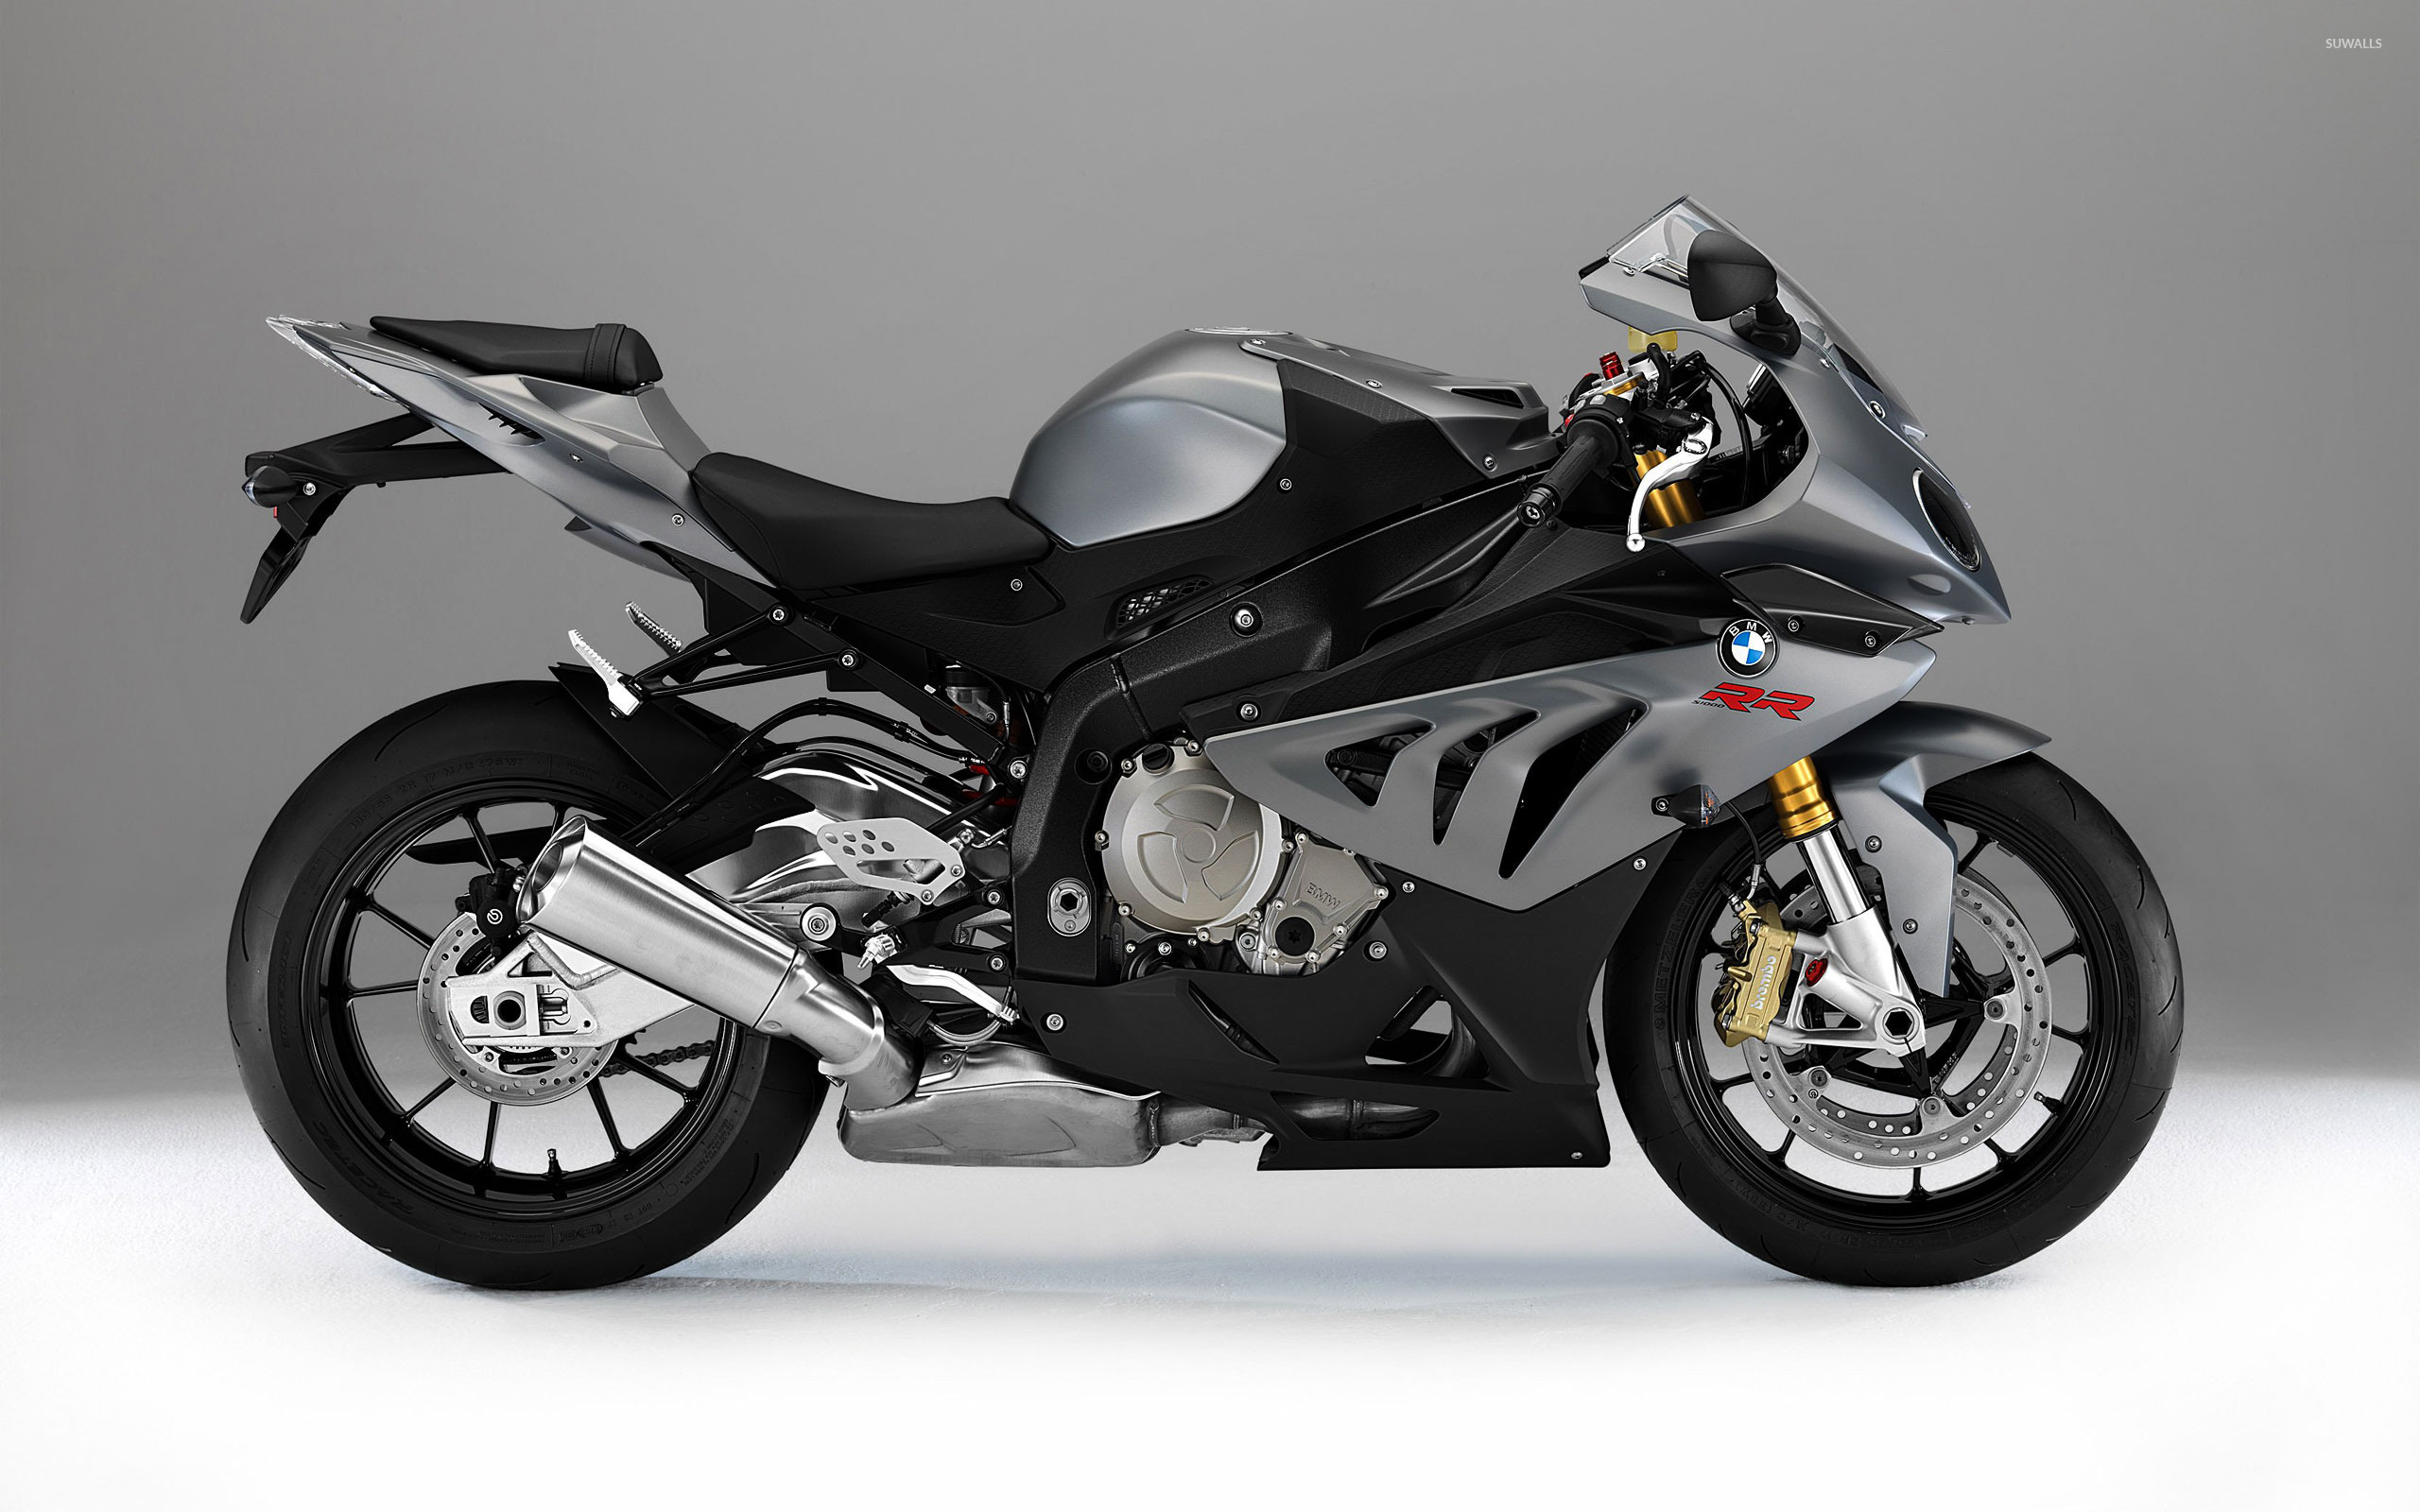 2013 Bmw S1000rr Wallpaper Motorcycle Wallpapers 20586